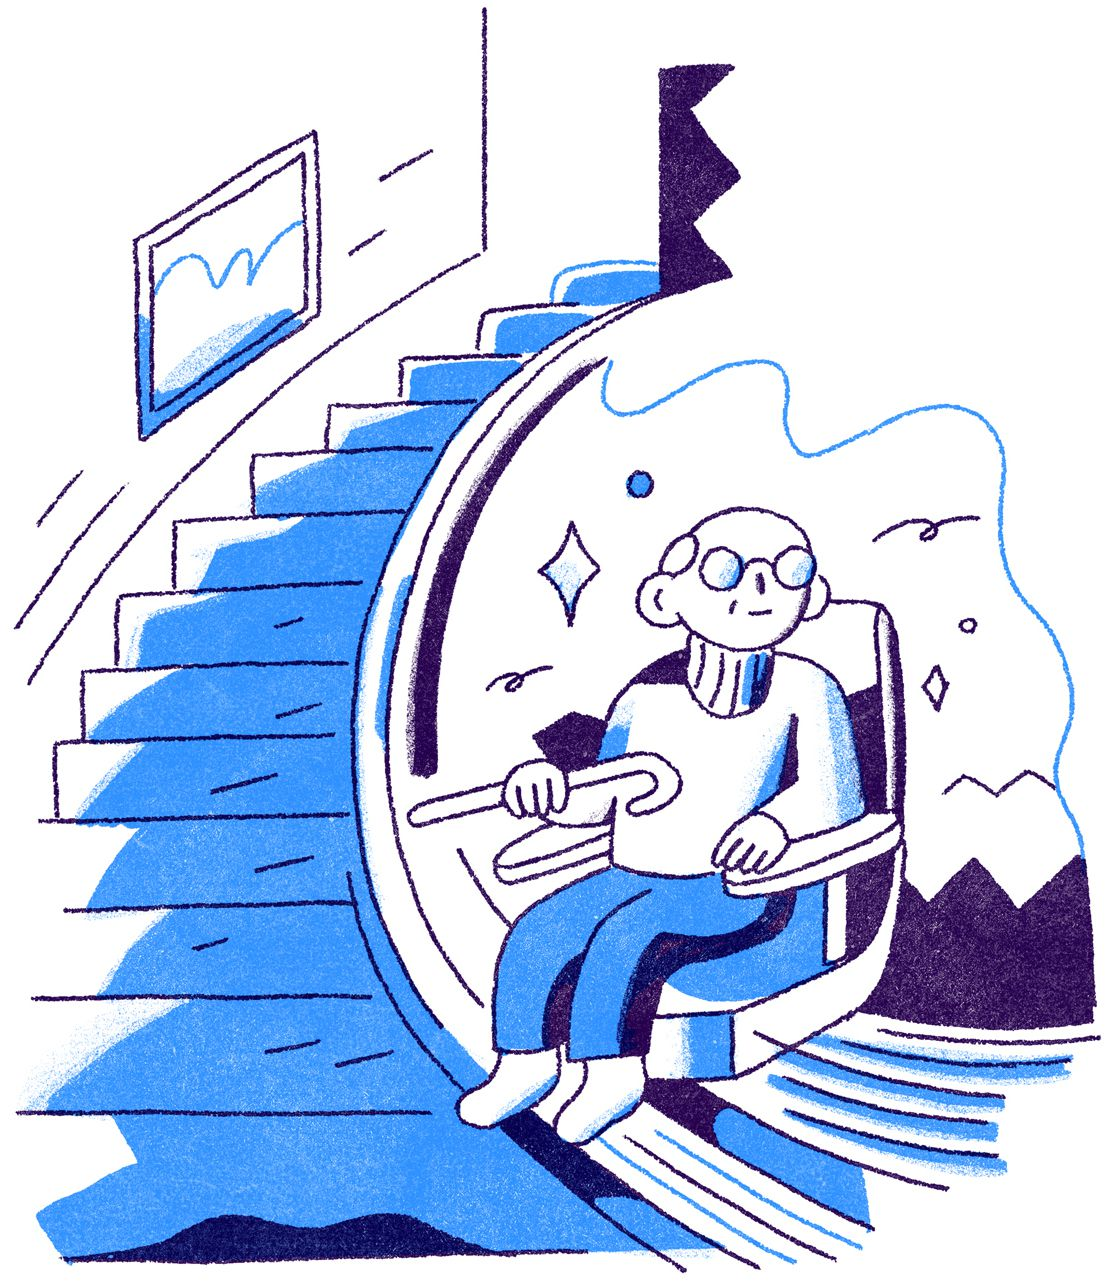 An old man in a turtleneck holding a cane serenely riding a stair assist machine up a floor. Illustration.